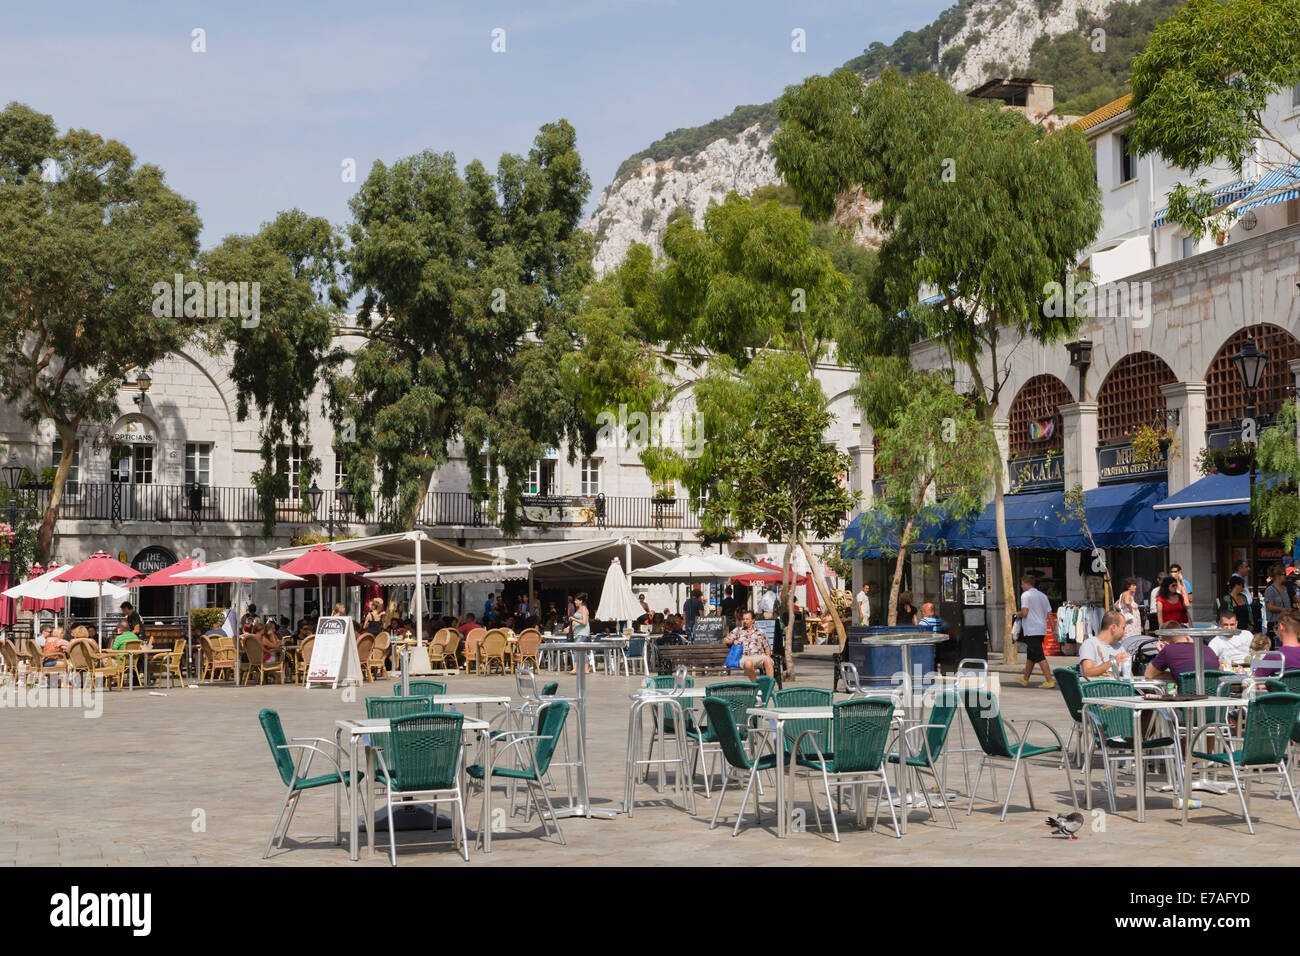 Casemates Square, British overseas territory of Gibraltar - Stock Image